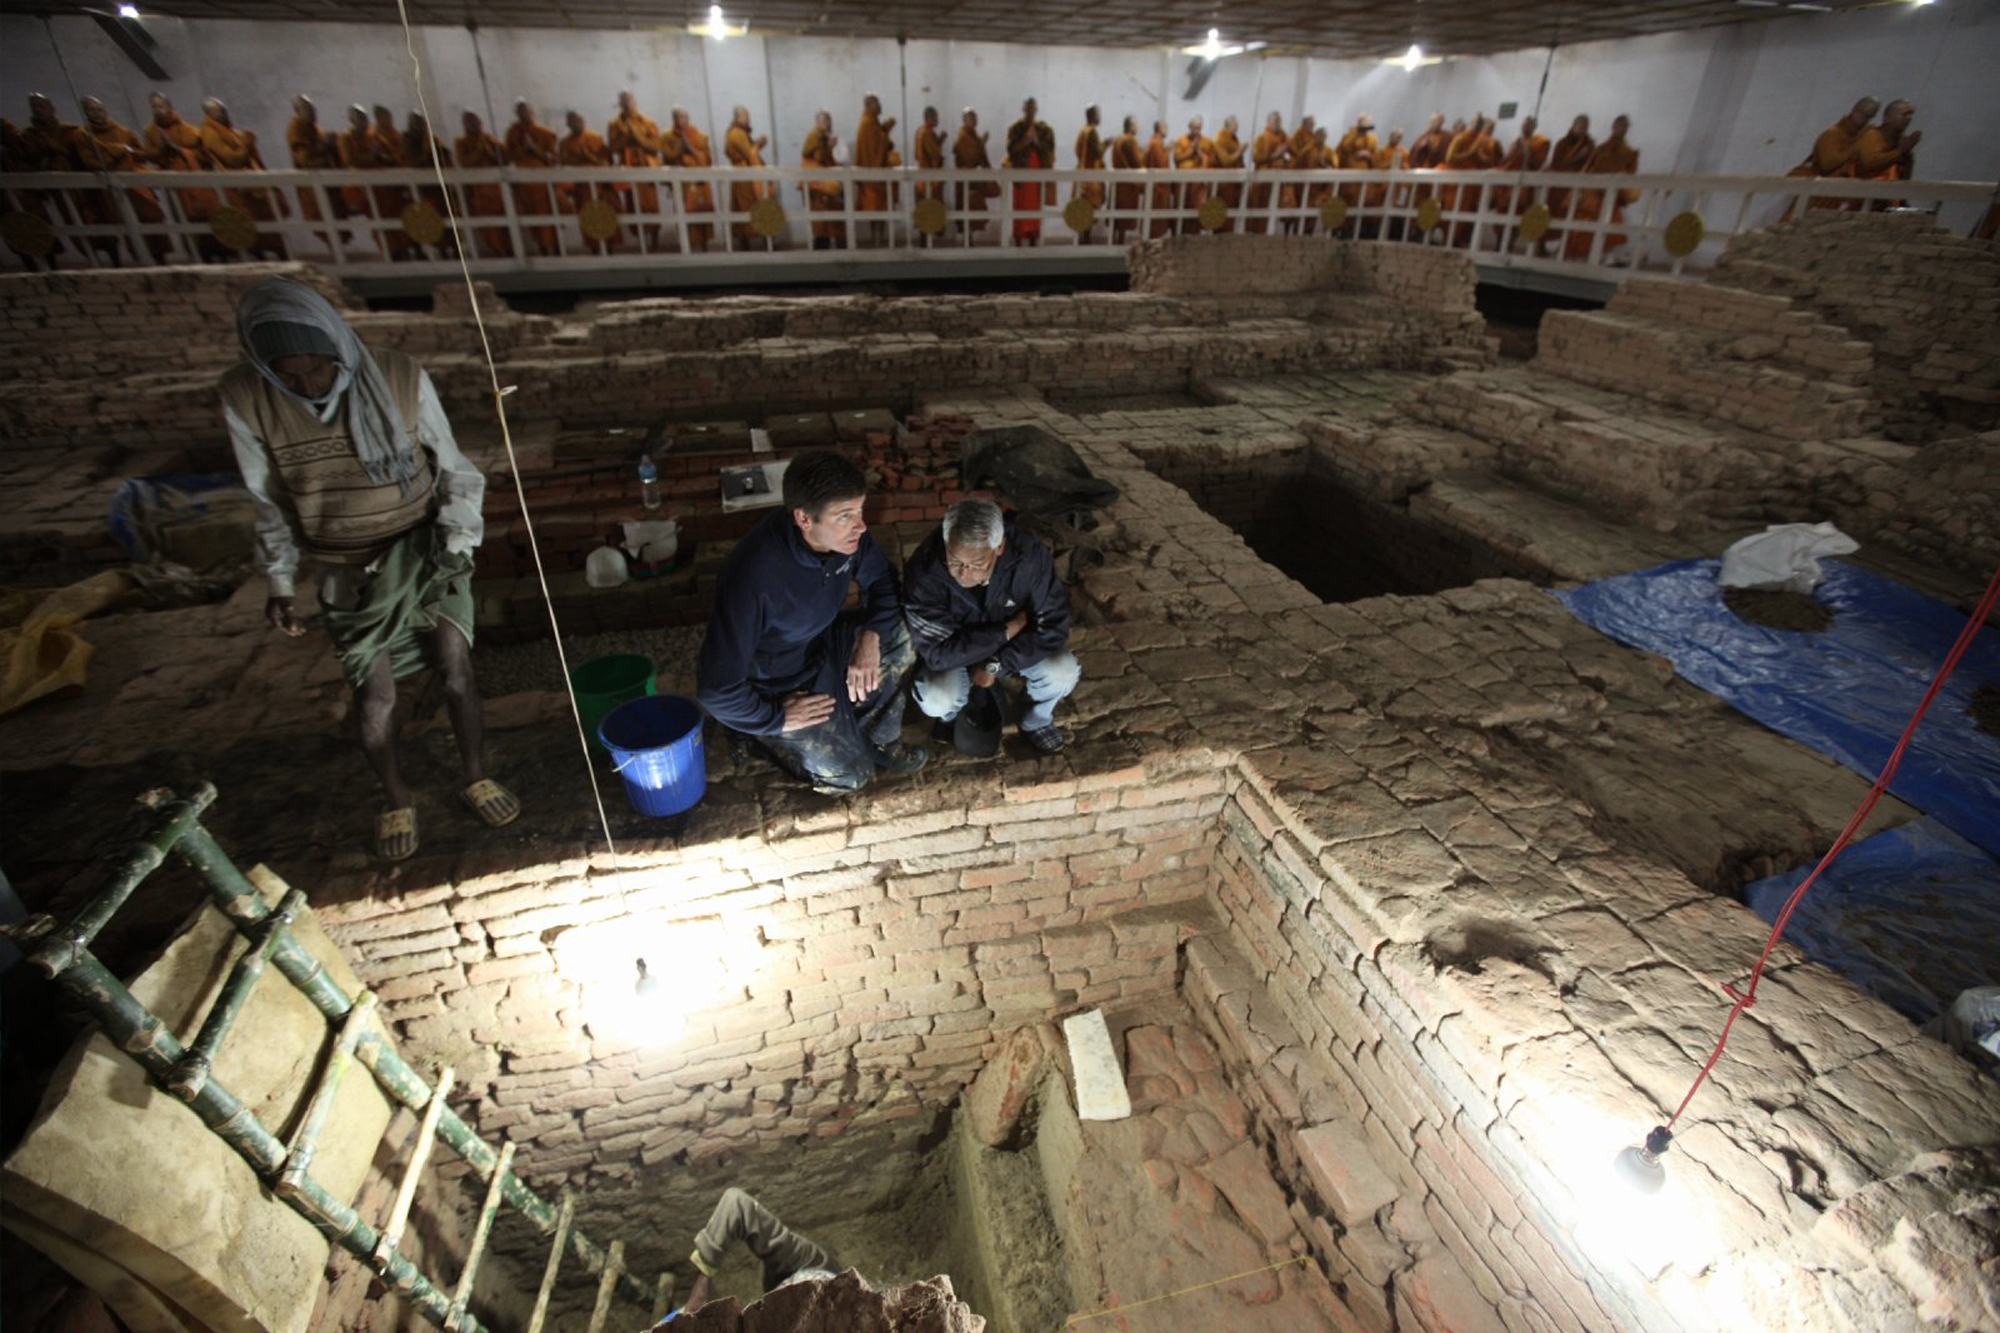 Archaeologists Robin Coningham, second from right, and Kosh Prasad Acharya, right, look over excavations within the Maya Devi Temple at Lumbini in Nepal.